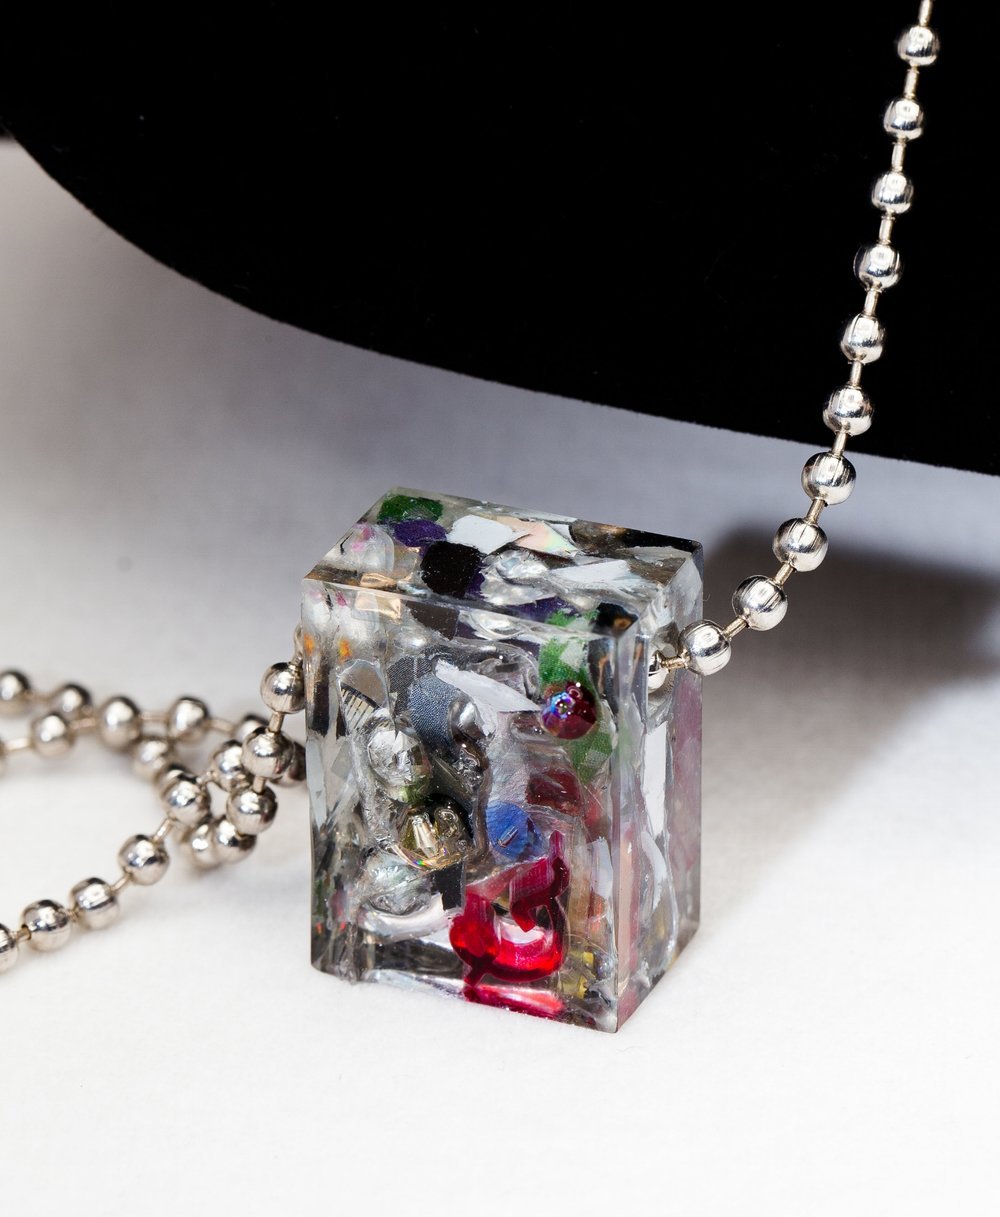 """ART IN THE BOX"" Group Show in BKLN Nov30.2018-Jan06.2019 - Featuring ""Standardized Trash Pendants (v4.2)"".Pendants will be available for purchase at About Glamour + AG Gallery, NY.address: 310 Grand Street Brooklyn, NY 11211Group Show ""Art In The Box"" opens Nov30 - Jan06.Pendants and Lamp will be available for purchase.info: http://www.aboutglamour.net(email me for reservation + commission: osawacharles@mac.com )"